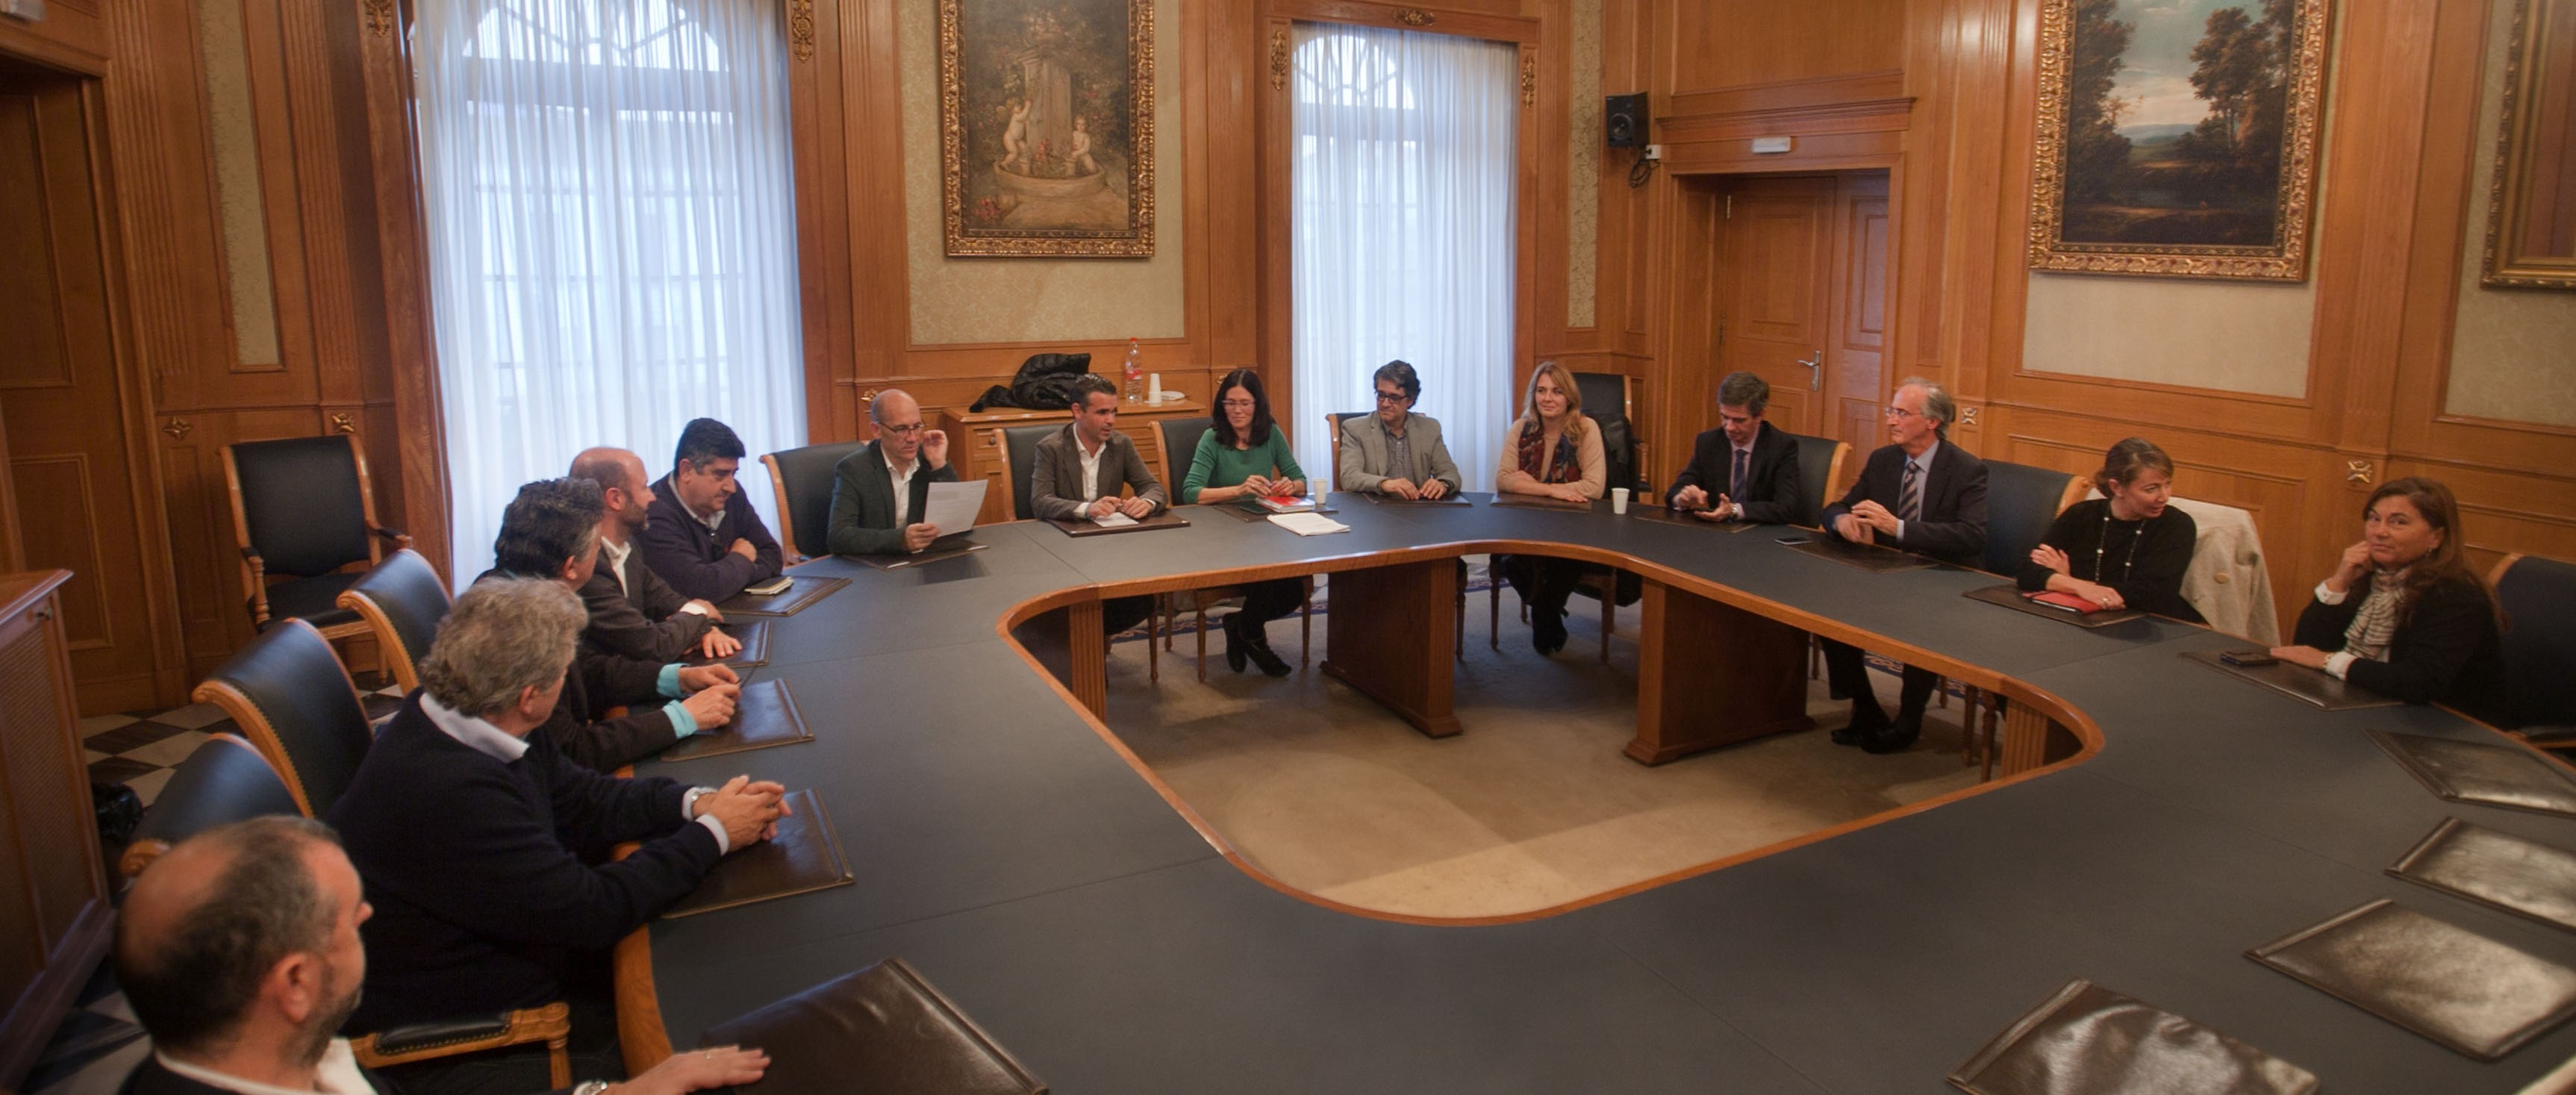 Bernal meets with local business people to promote Puerto Banús